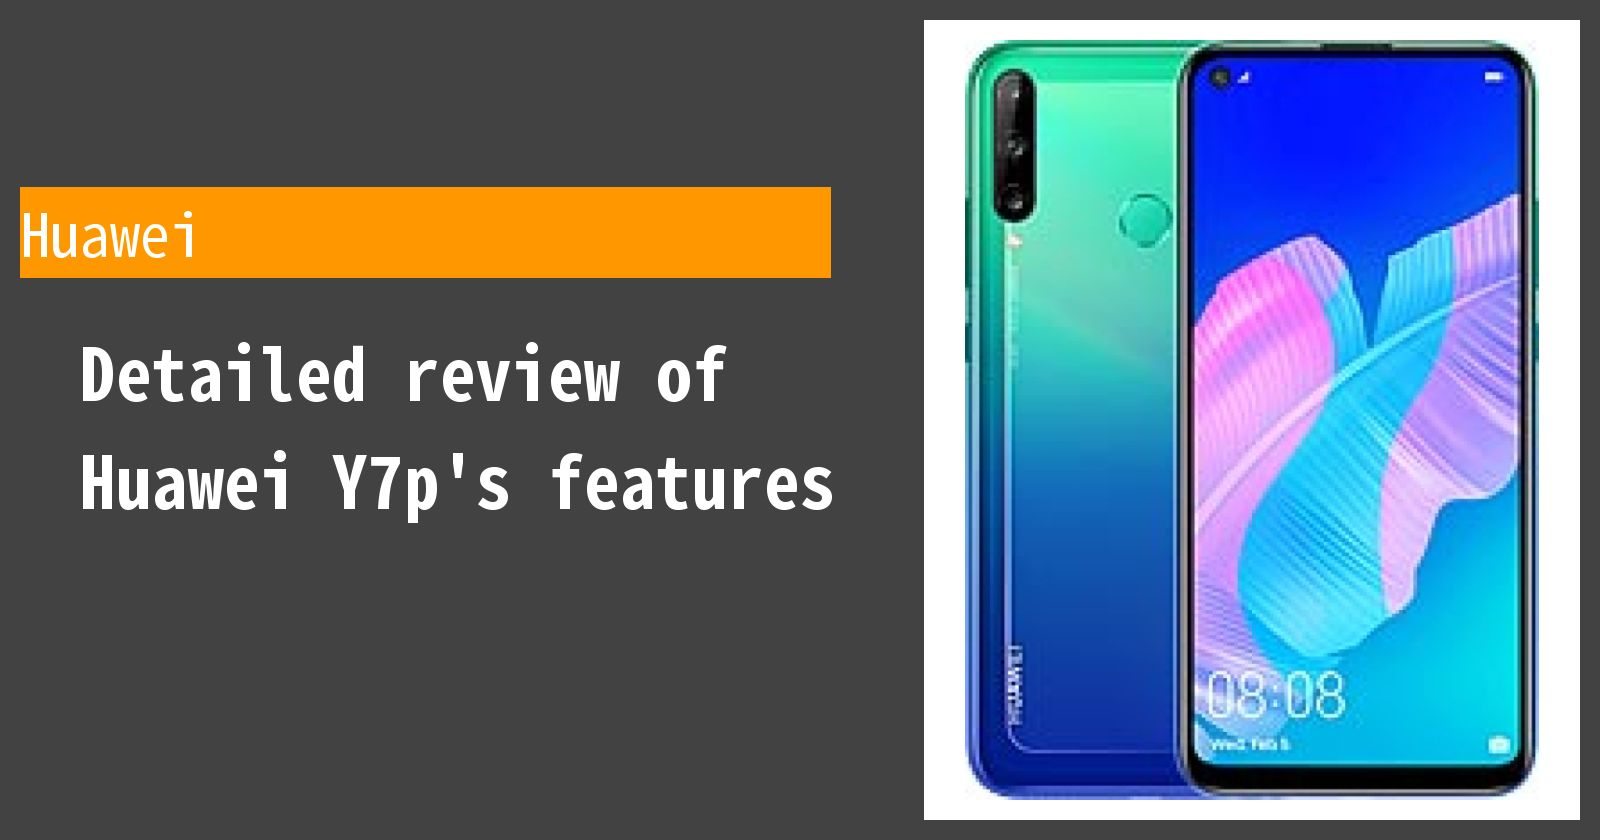 Detailed review of Huawei Y7p's features